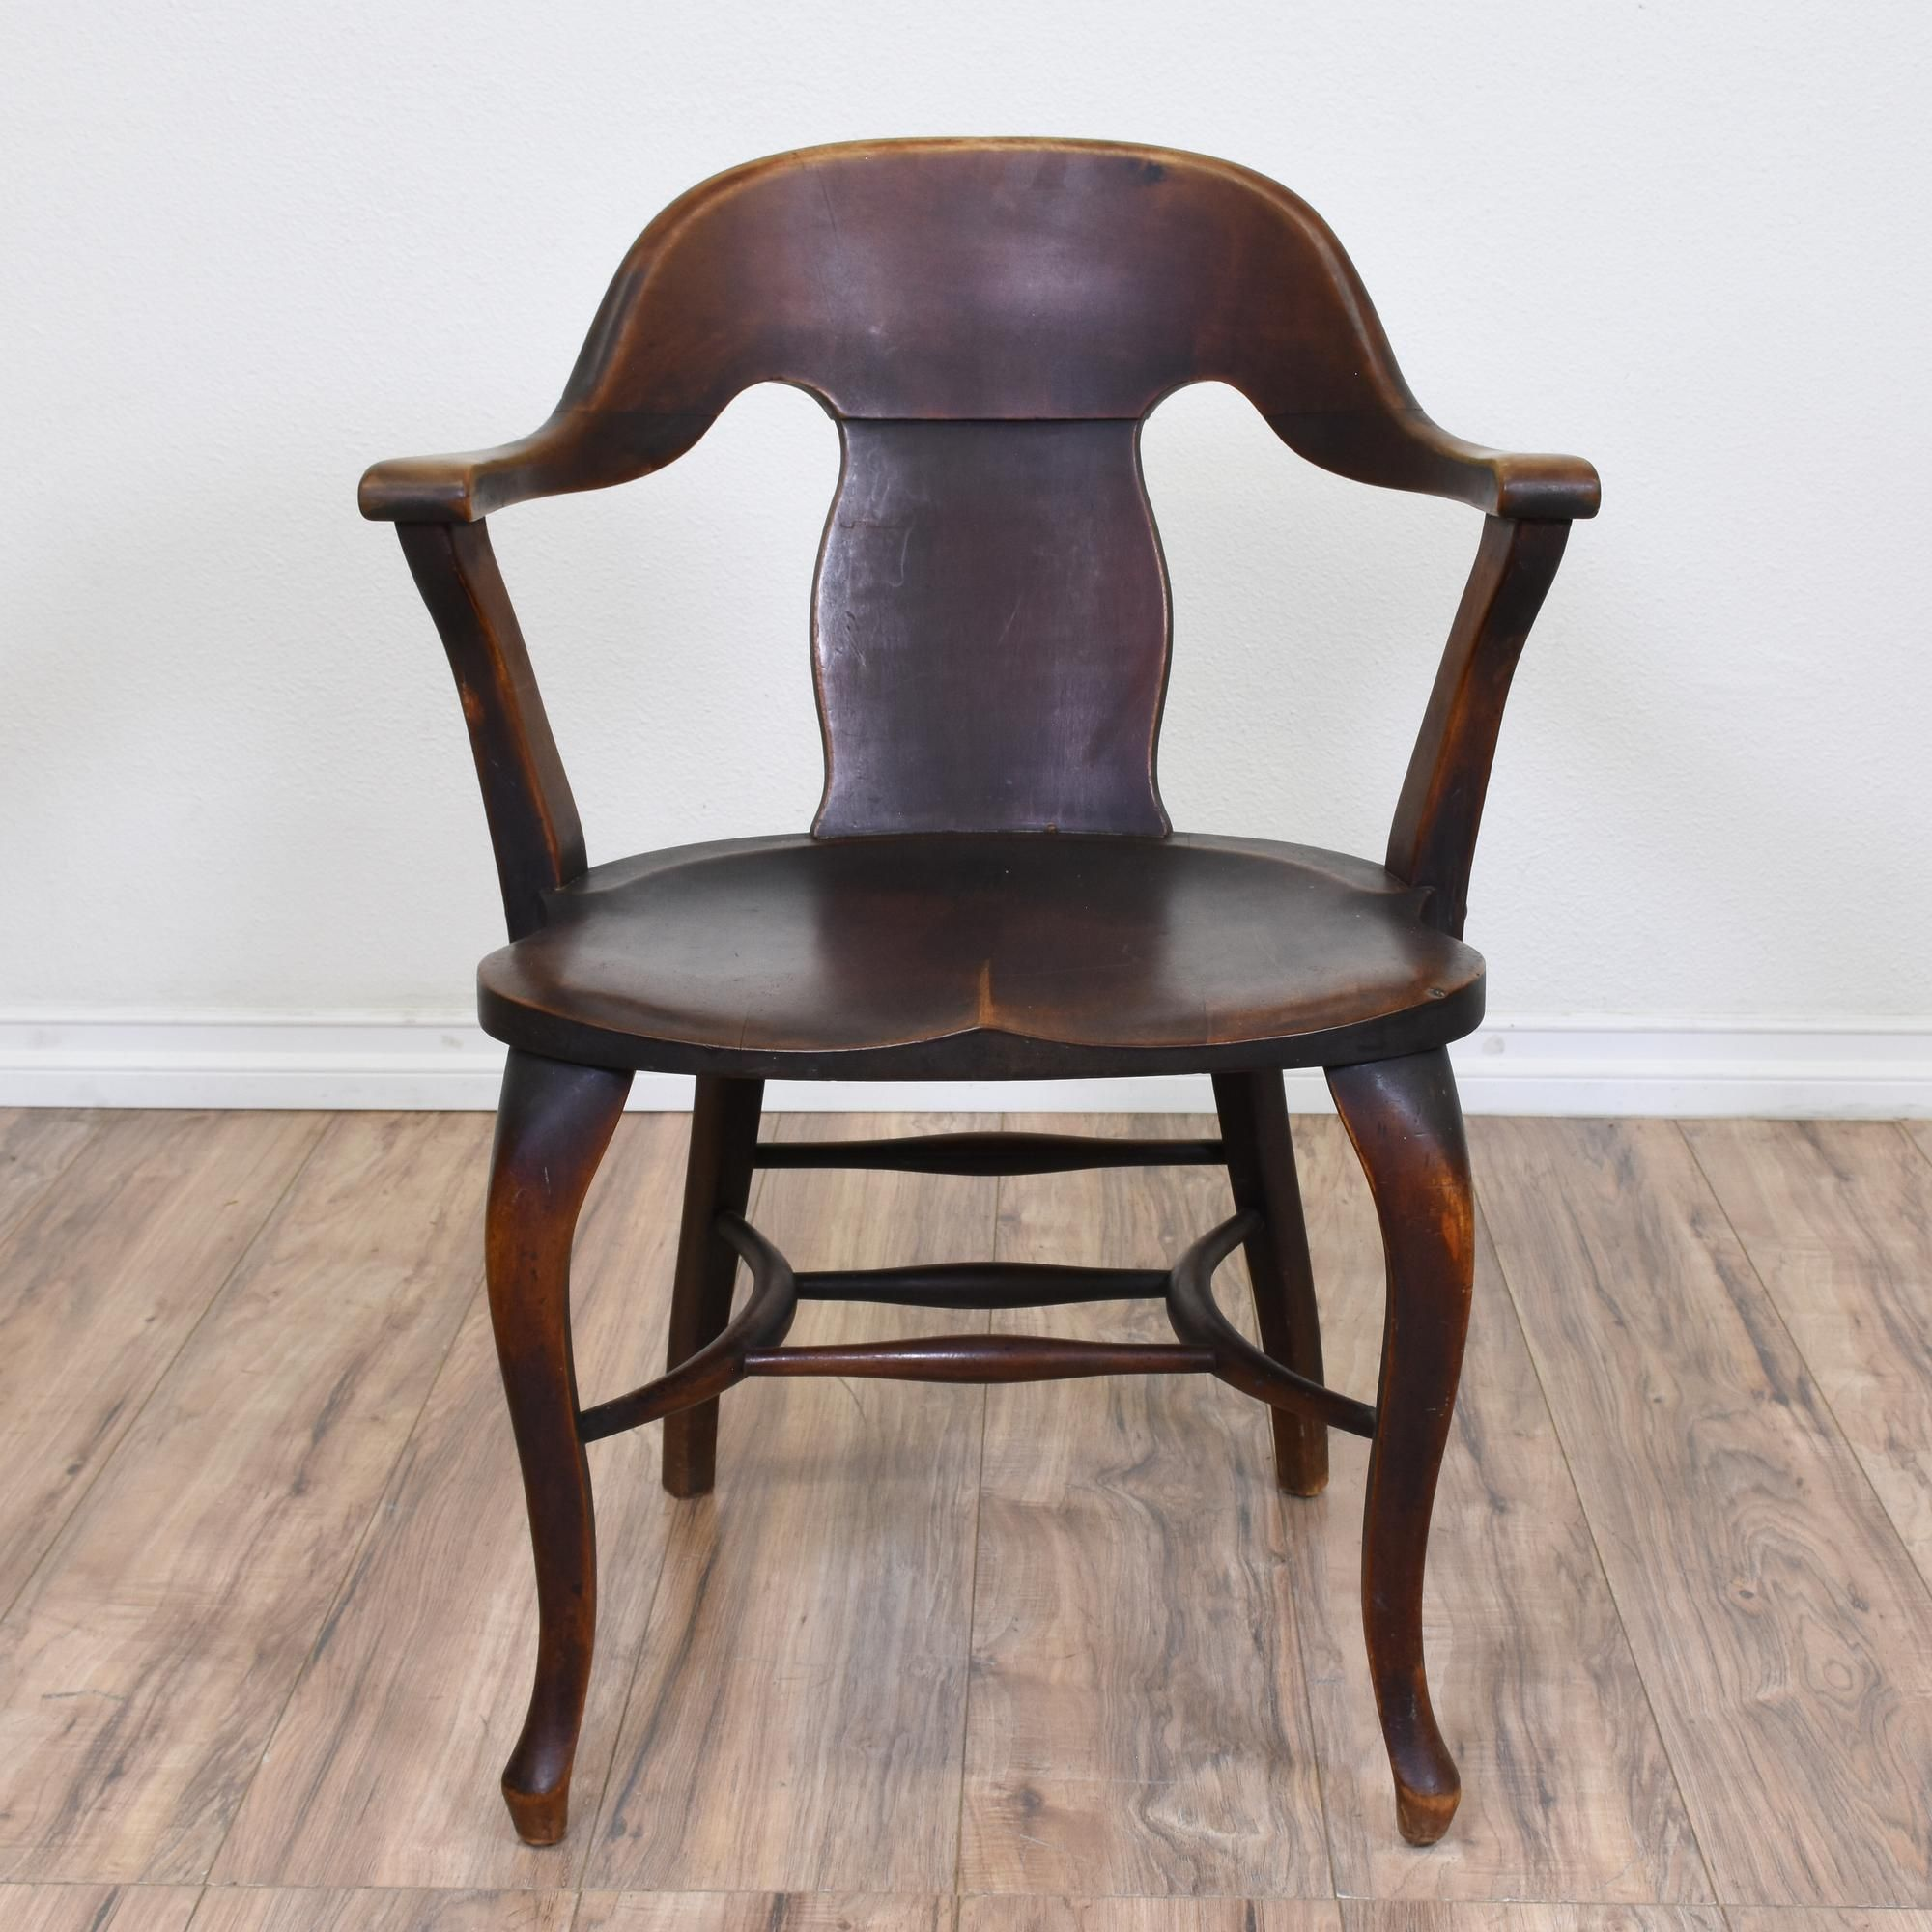 This rustic antique banker s chair is featured in a solid wood